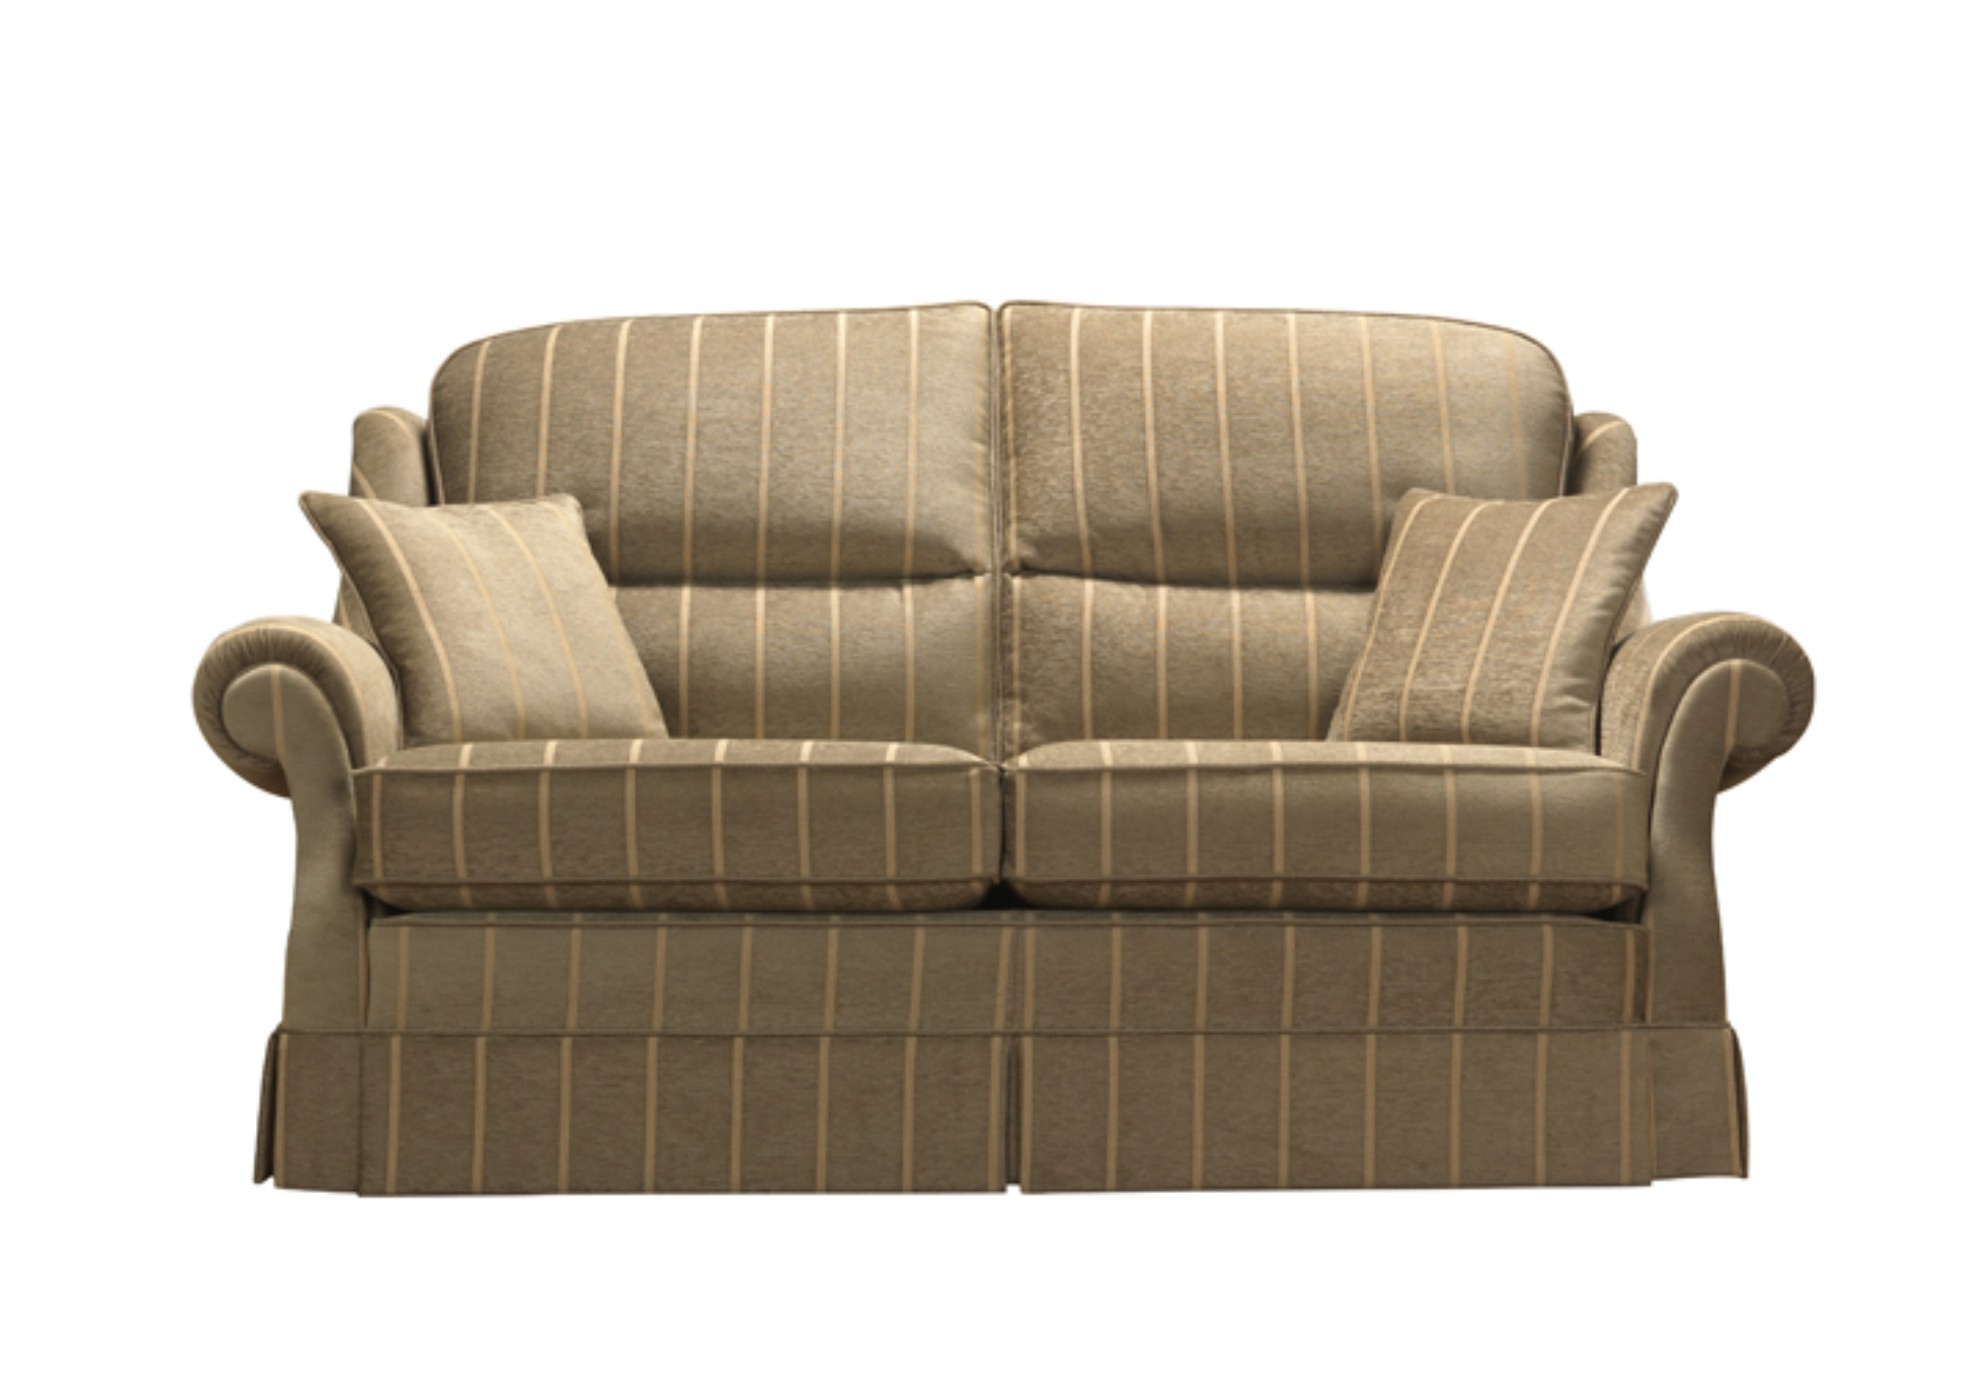 Malvern 2 Seater Sofa